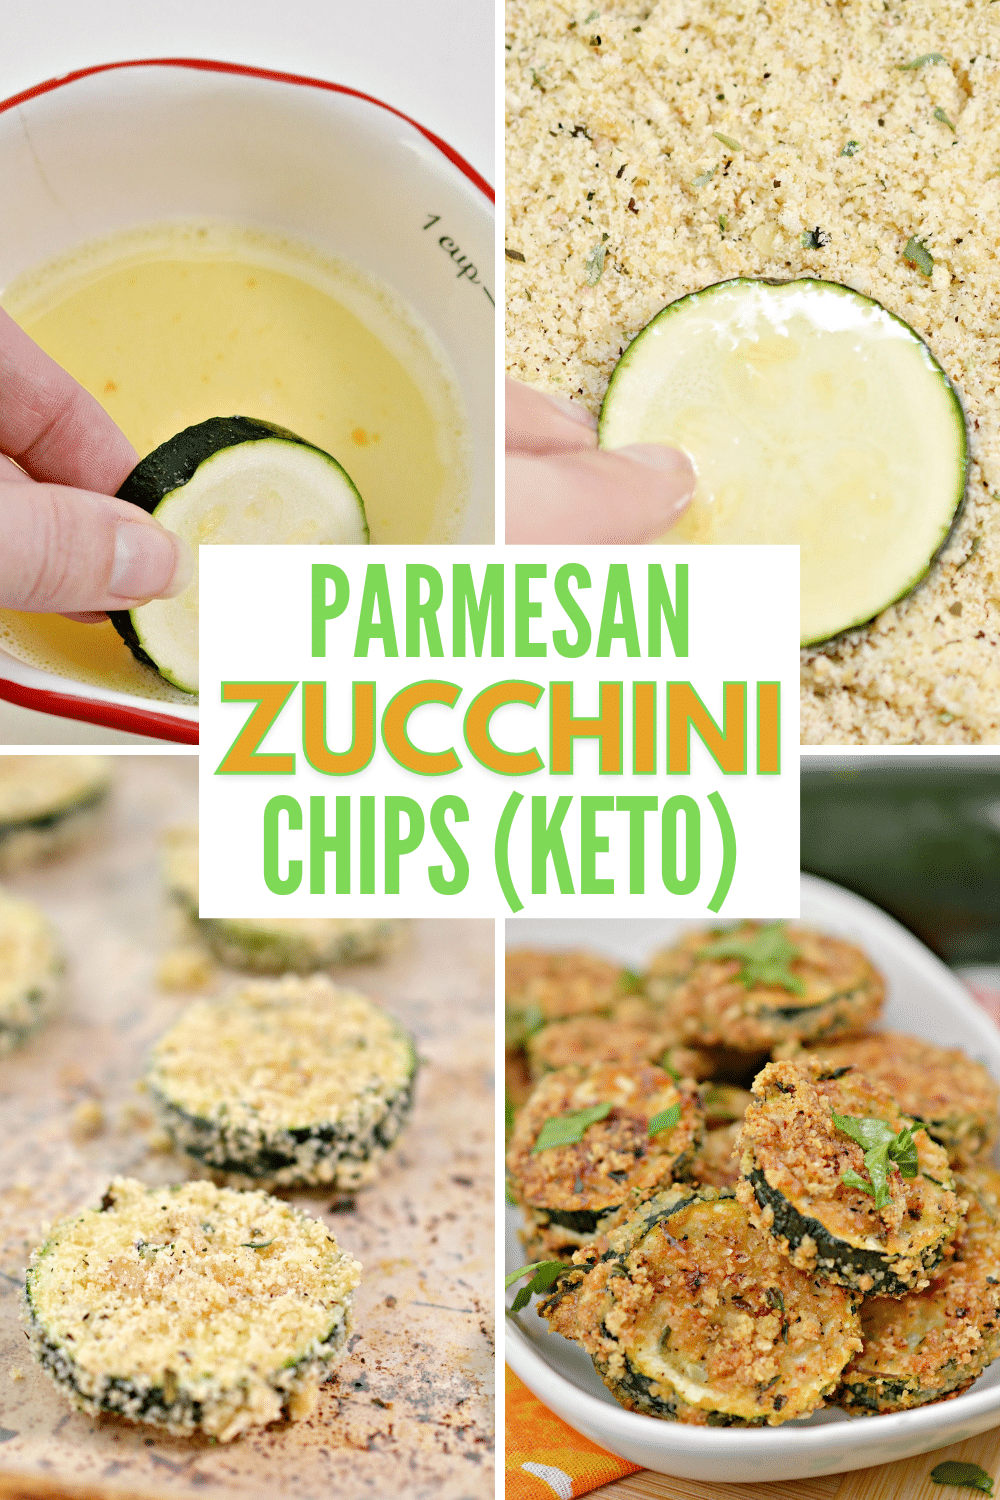 These Keto Parmesan Zucchini Chips are low carb and delicious. A great way to use up extra zucchini and works as an appetizer or side dish. #zucchini #keto #lowcarb via @wondermomwannab